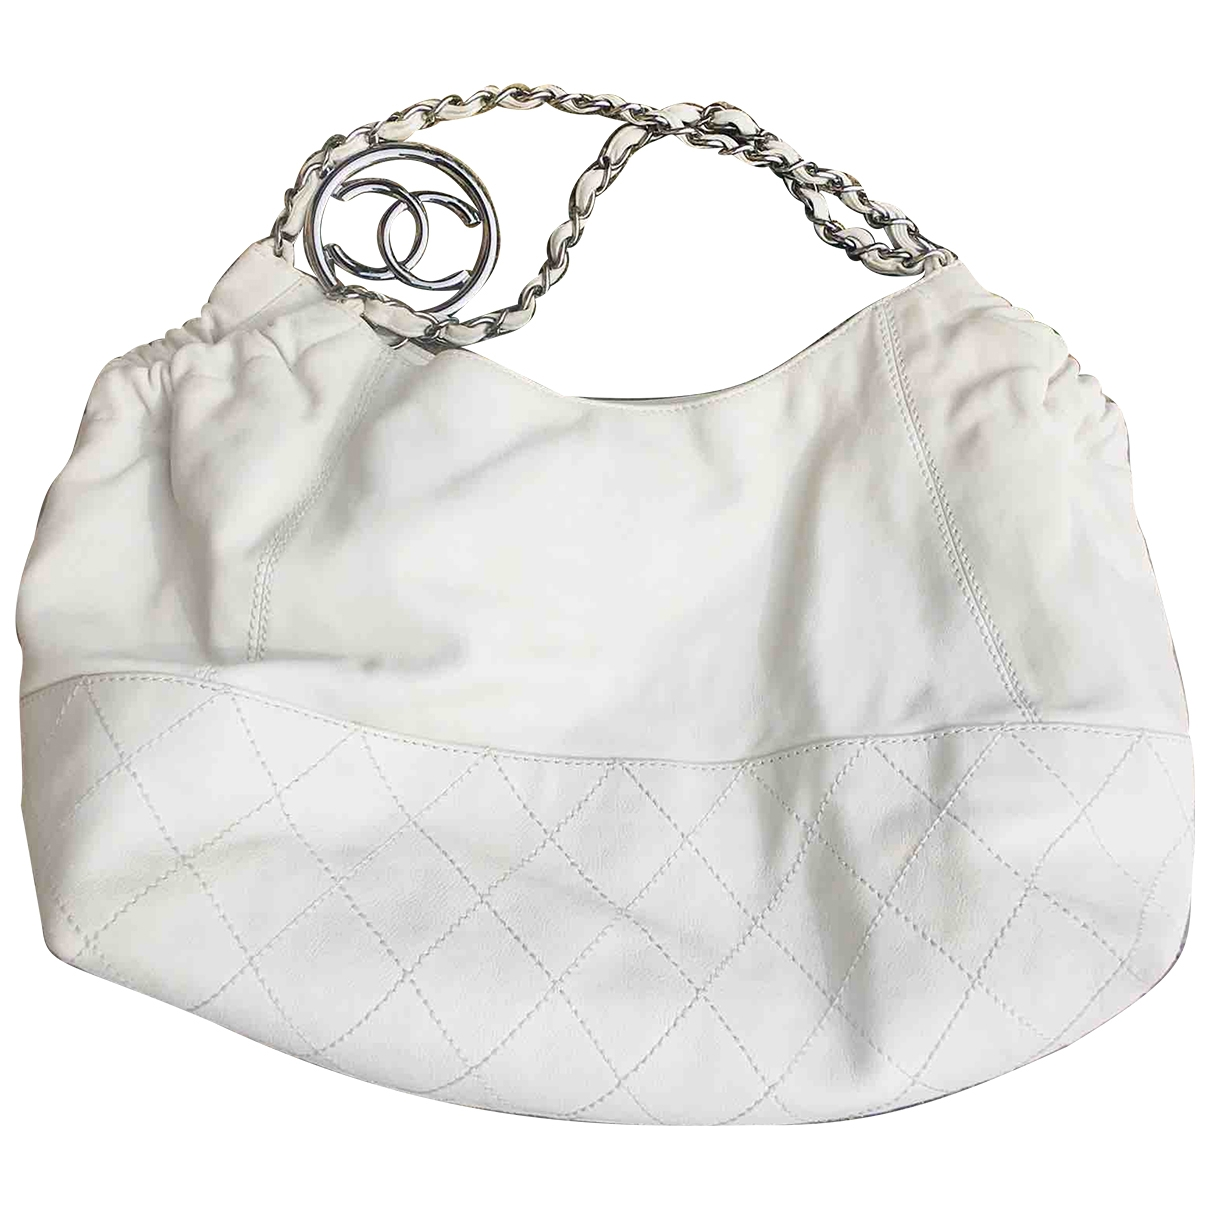 Chanel Coco Cabas White Leather handbag for Women \N